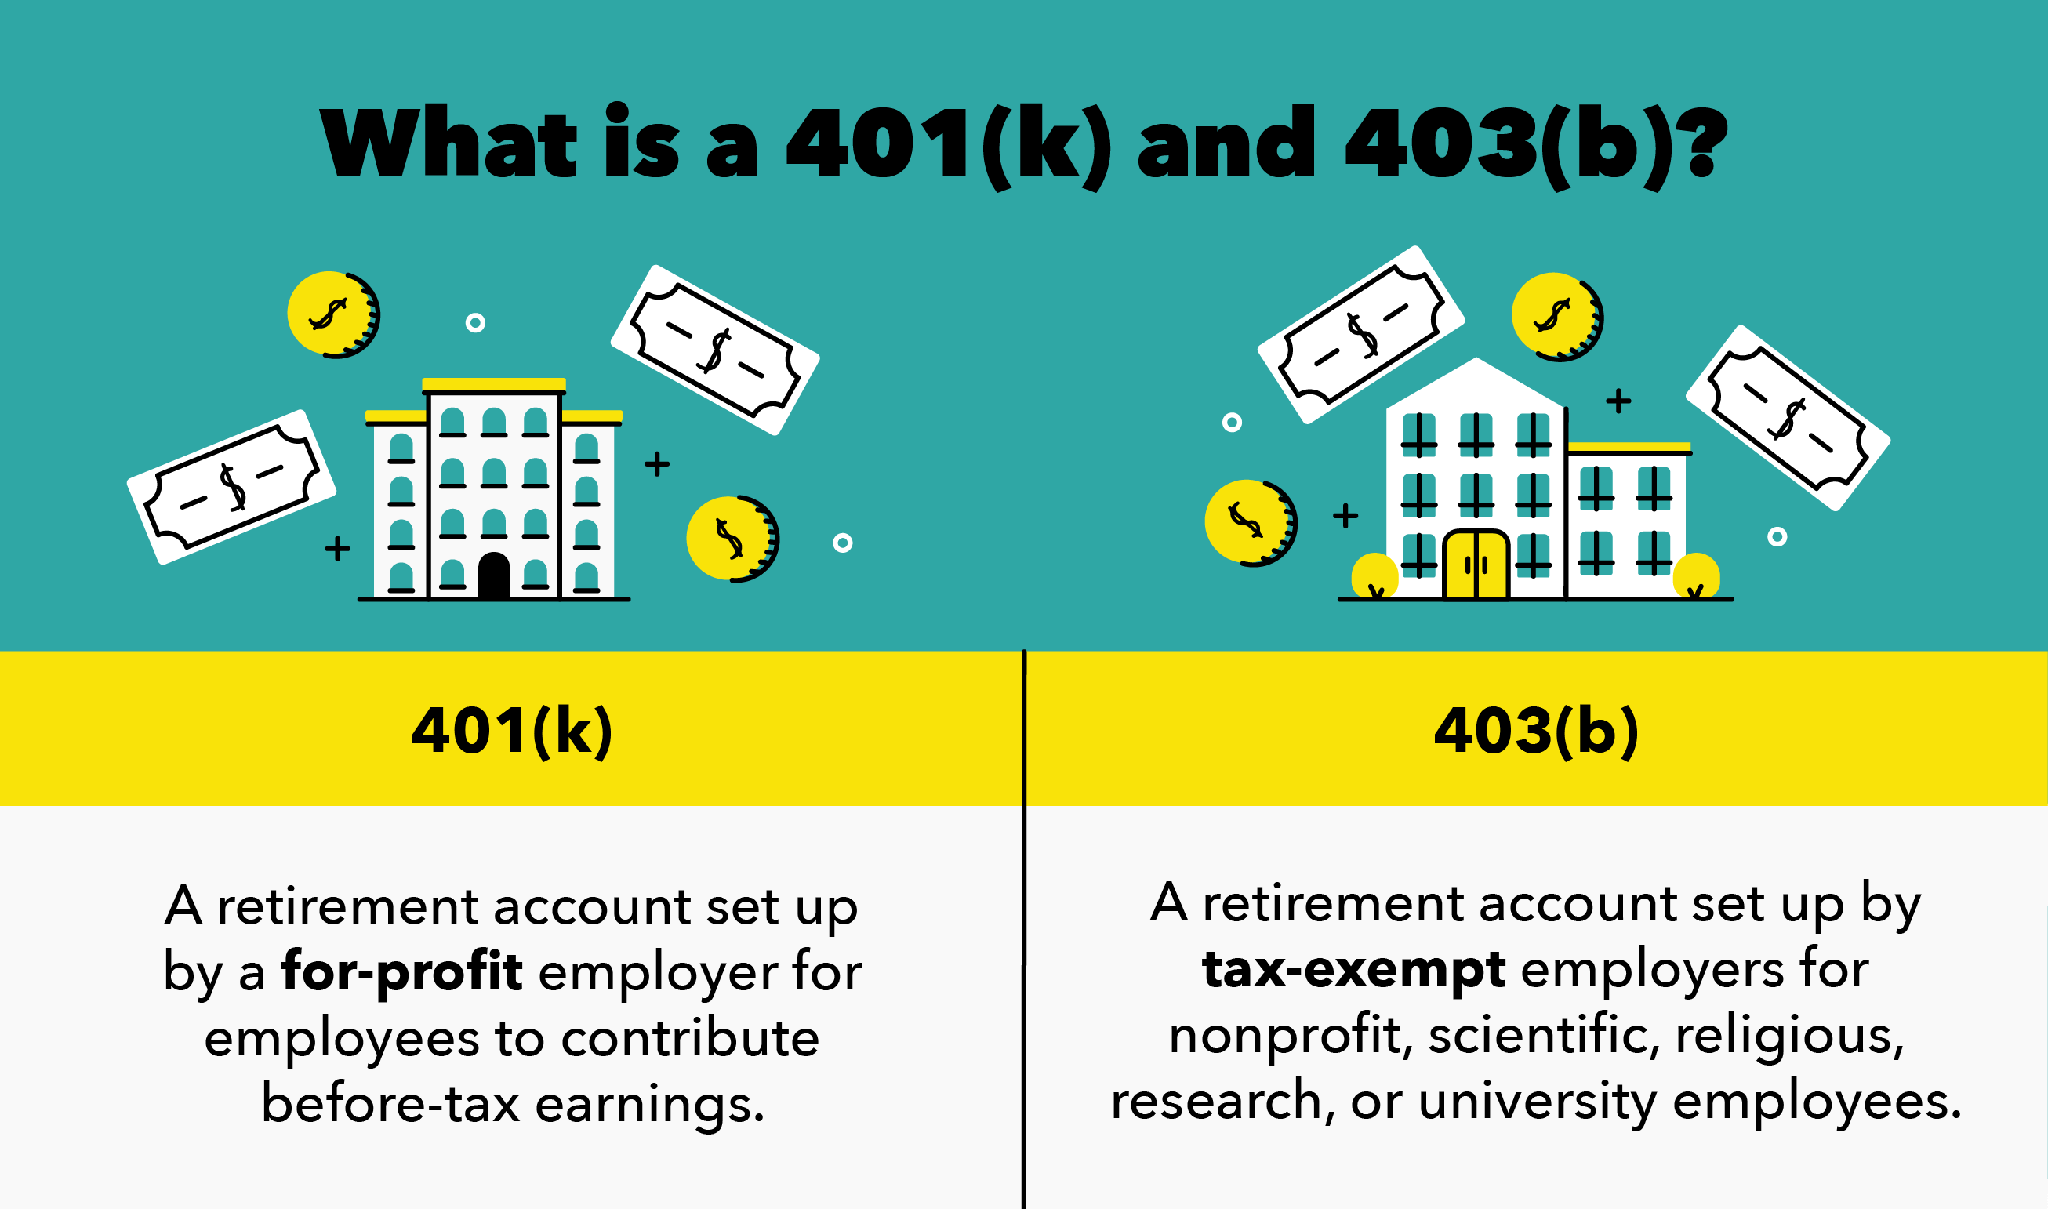 What is a 401(k) and 403(b)